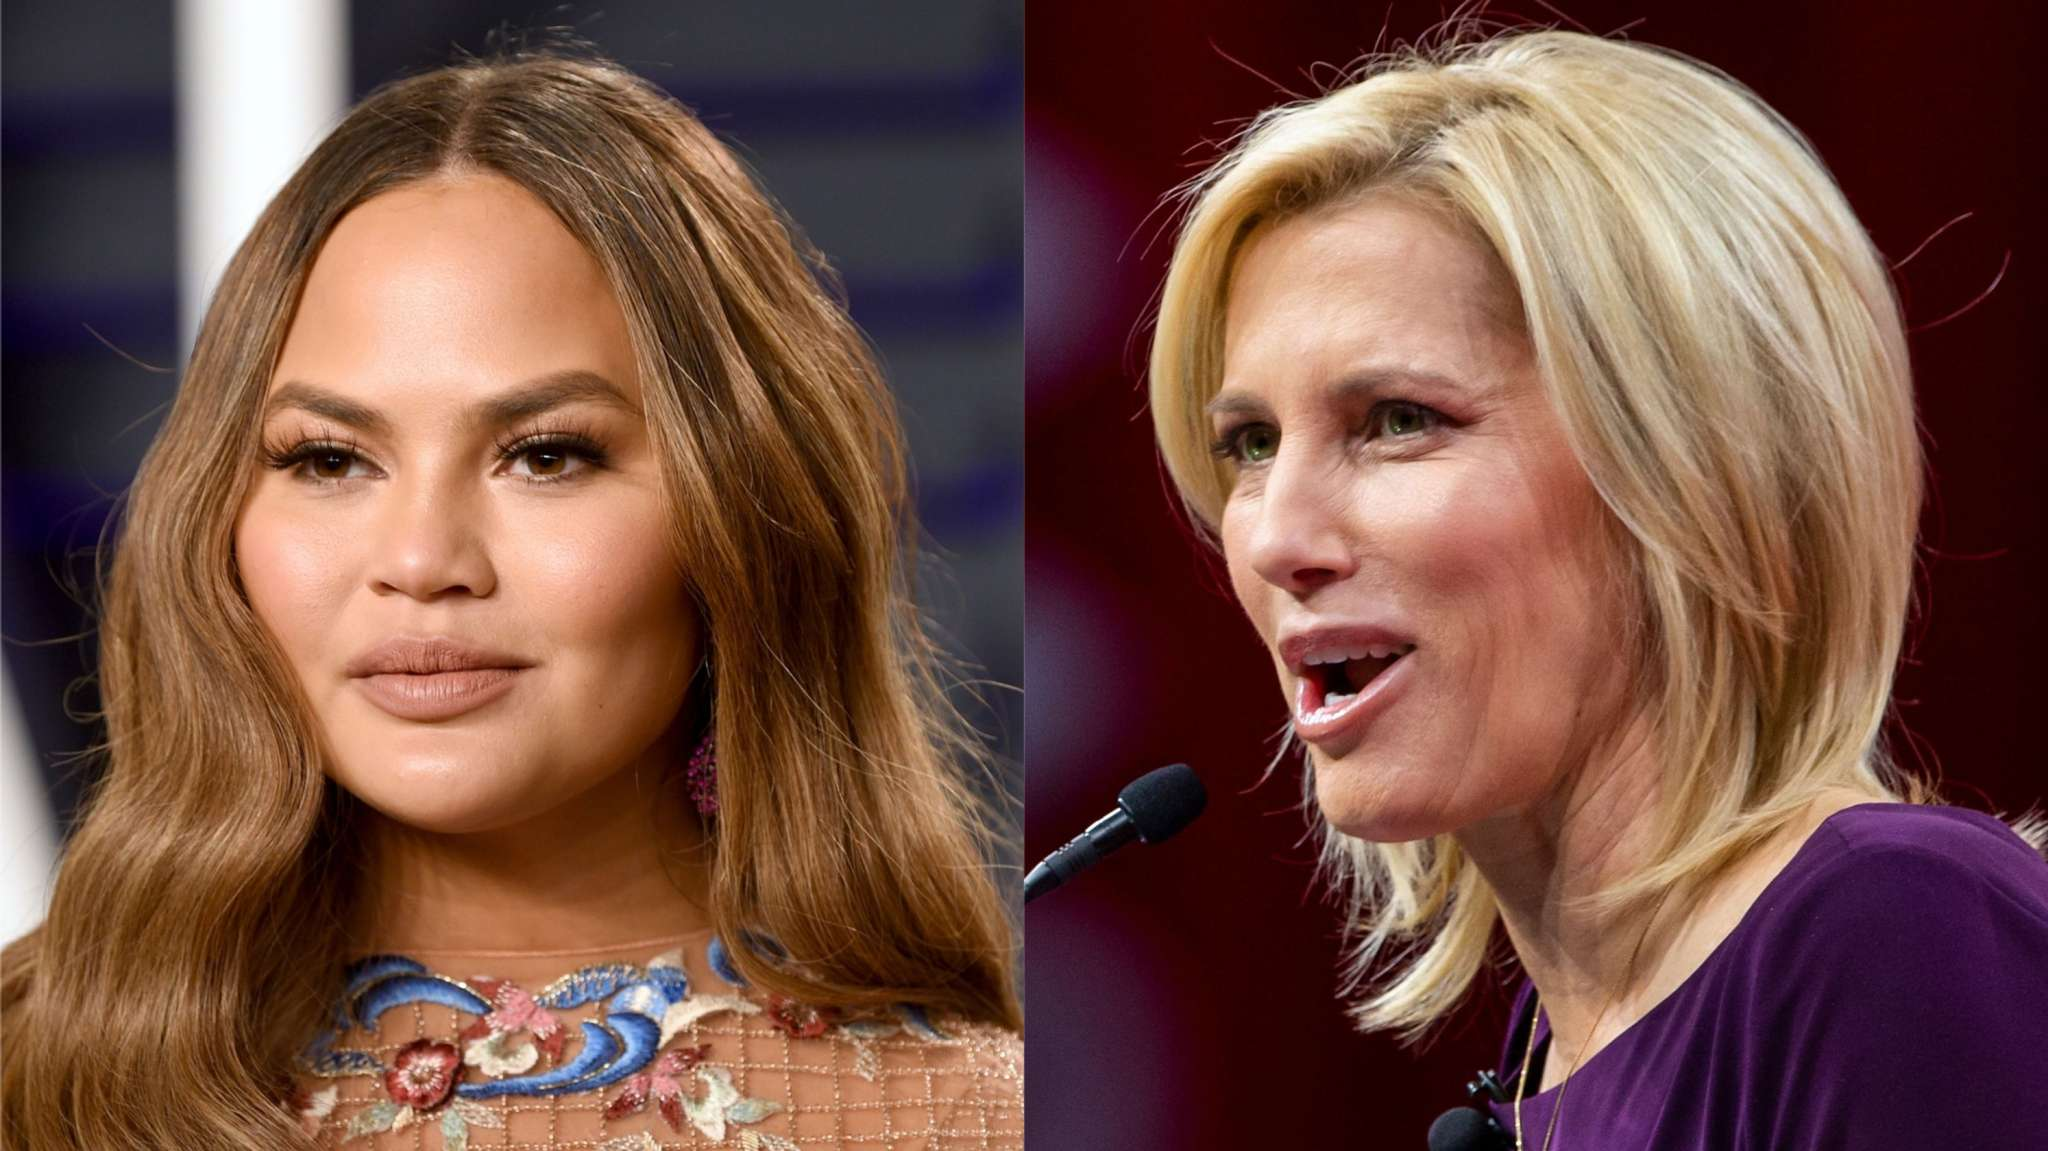 Hated Laura Ingraham Came For The Wrong Person - Find Out What Happened Between Her And Chrissy Teigen And Why John Legend's Wife Called The Host 'White Supremacist'